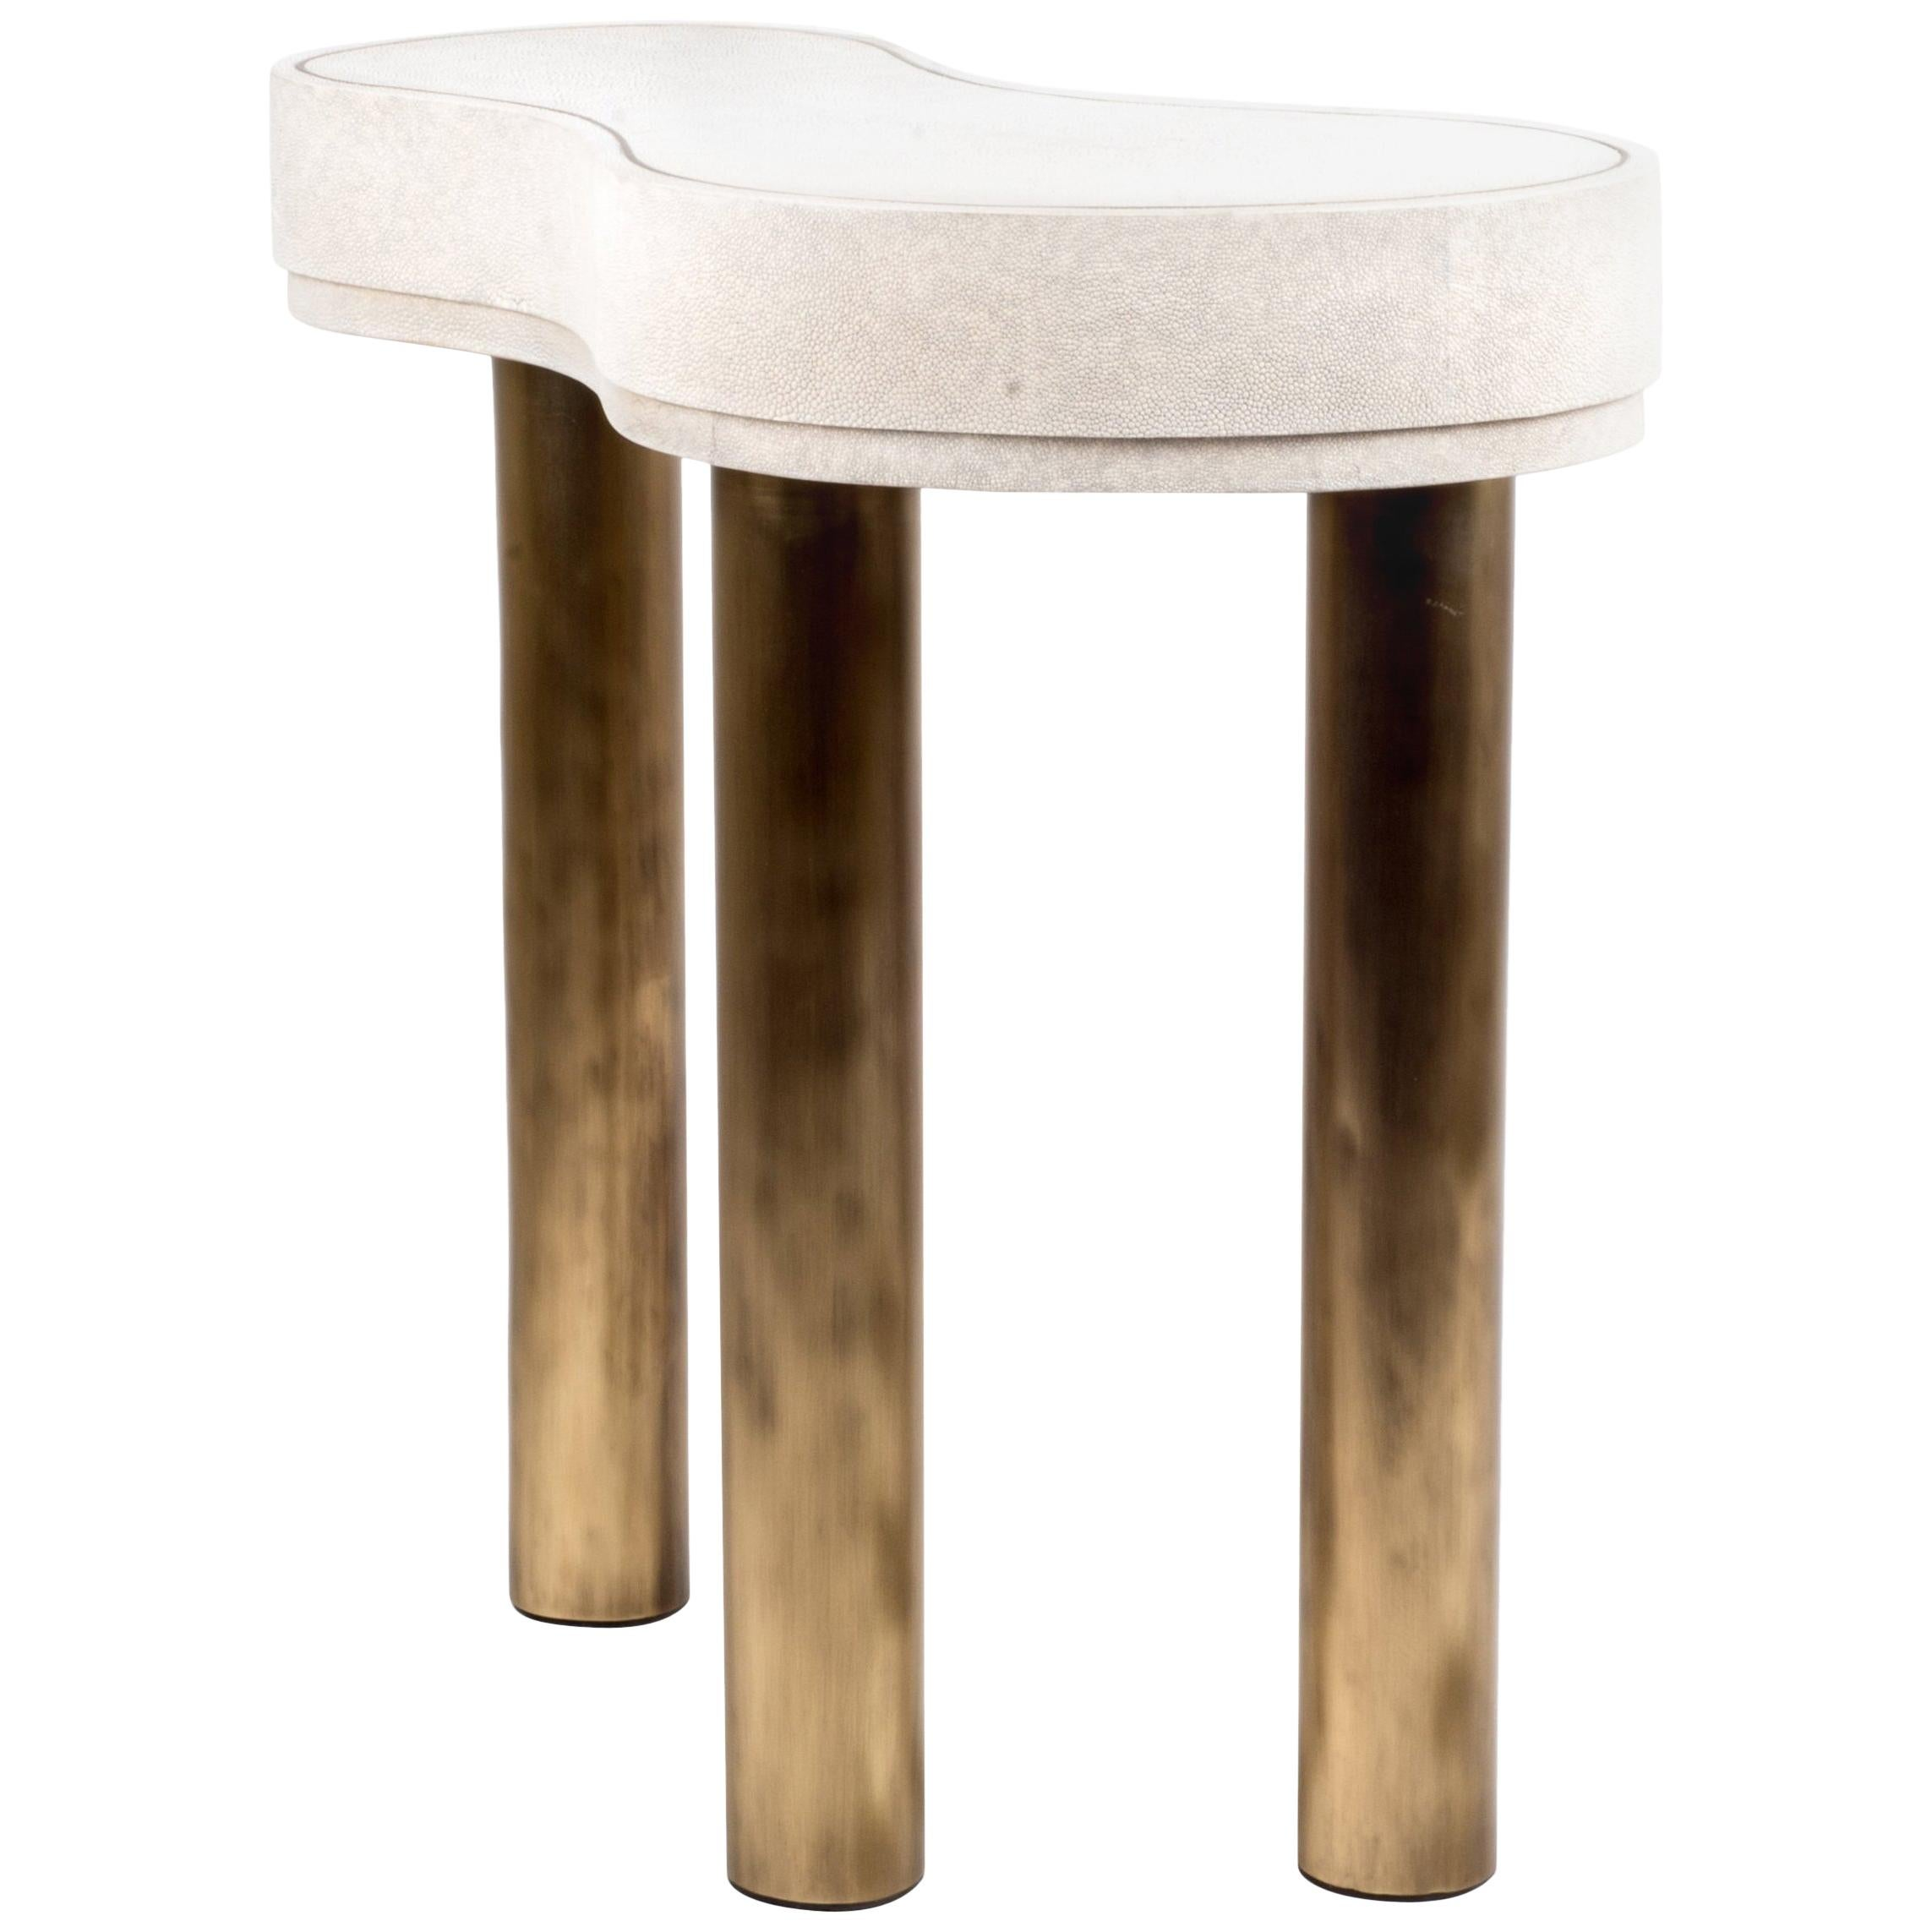 Constellation Side Table in Cream Shagreen and Bronze-Patina Brass by Kifu Paris